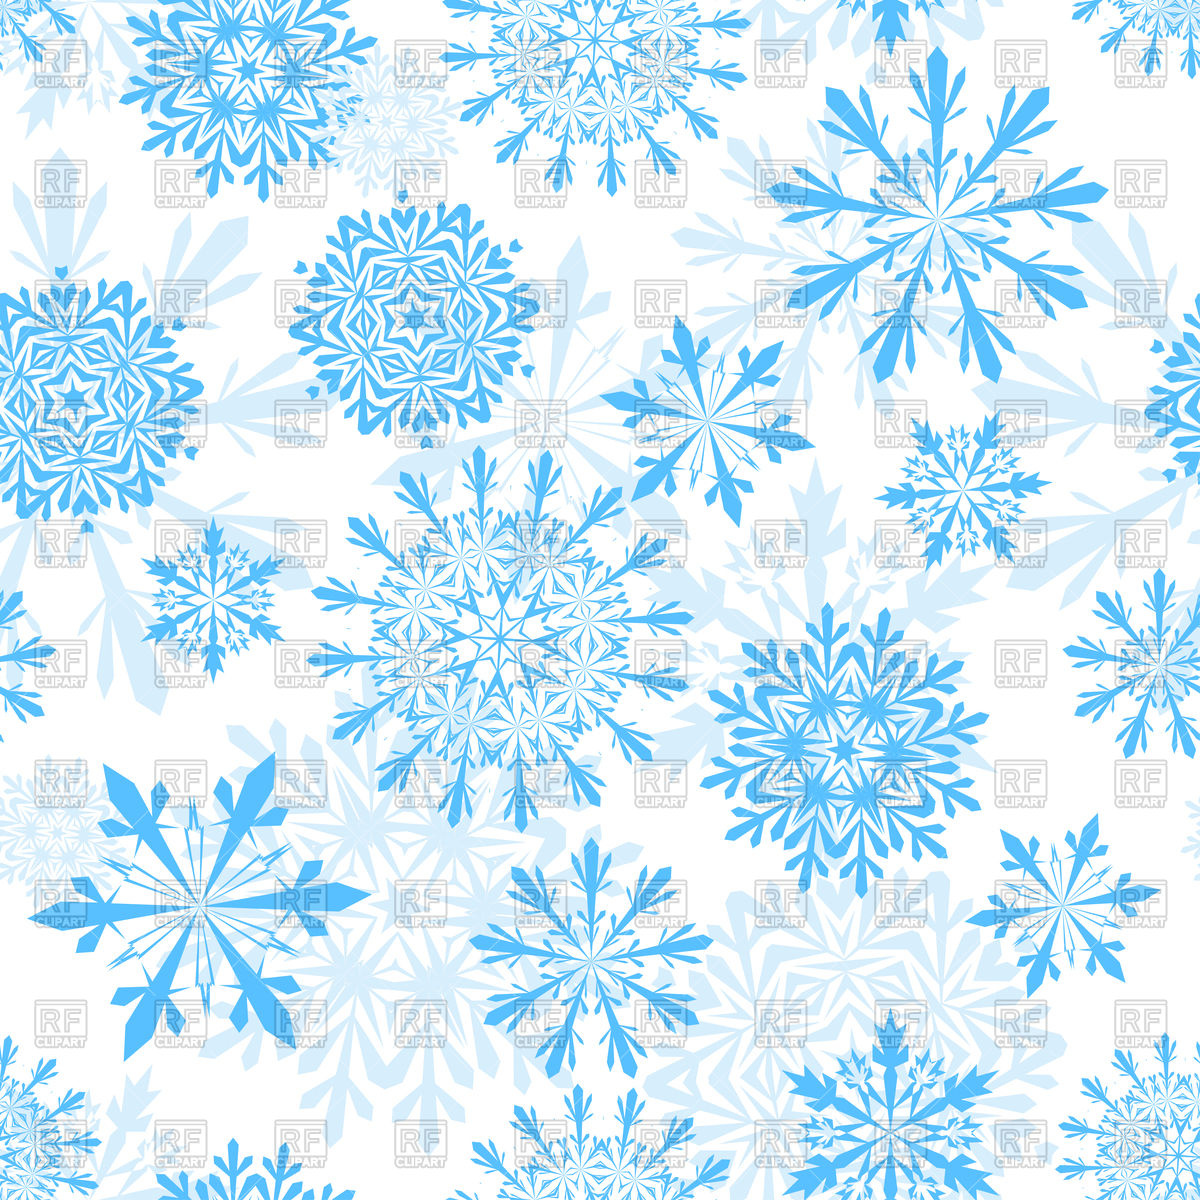 Seamless winter background with snowflakes Vector Image of 1200x1200